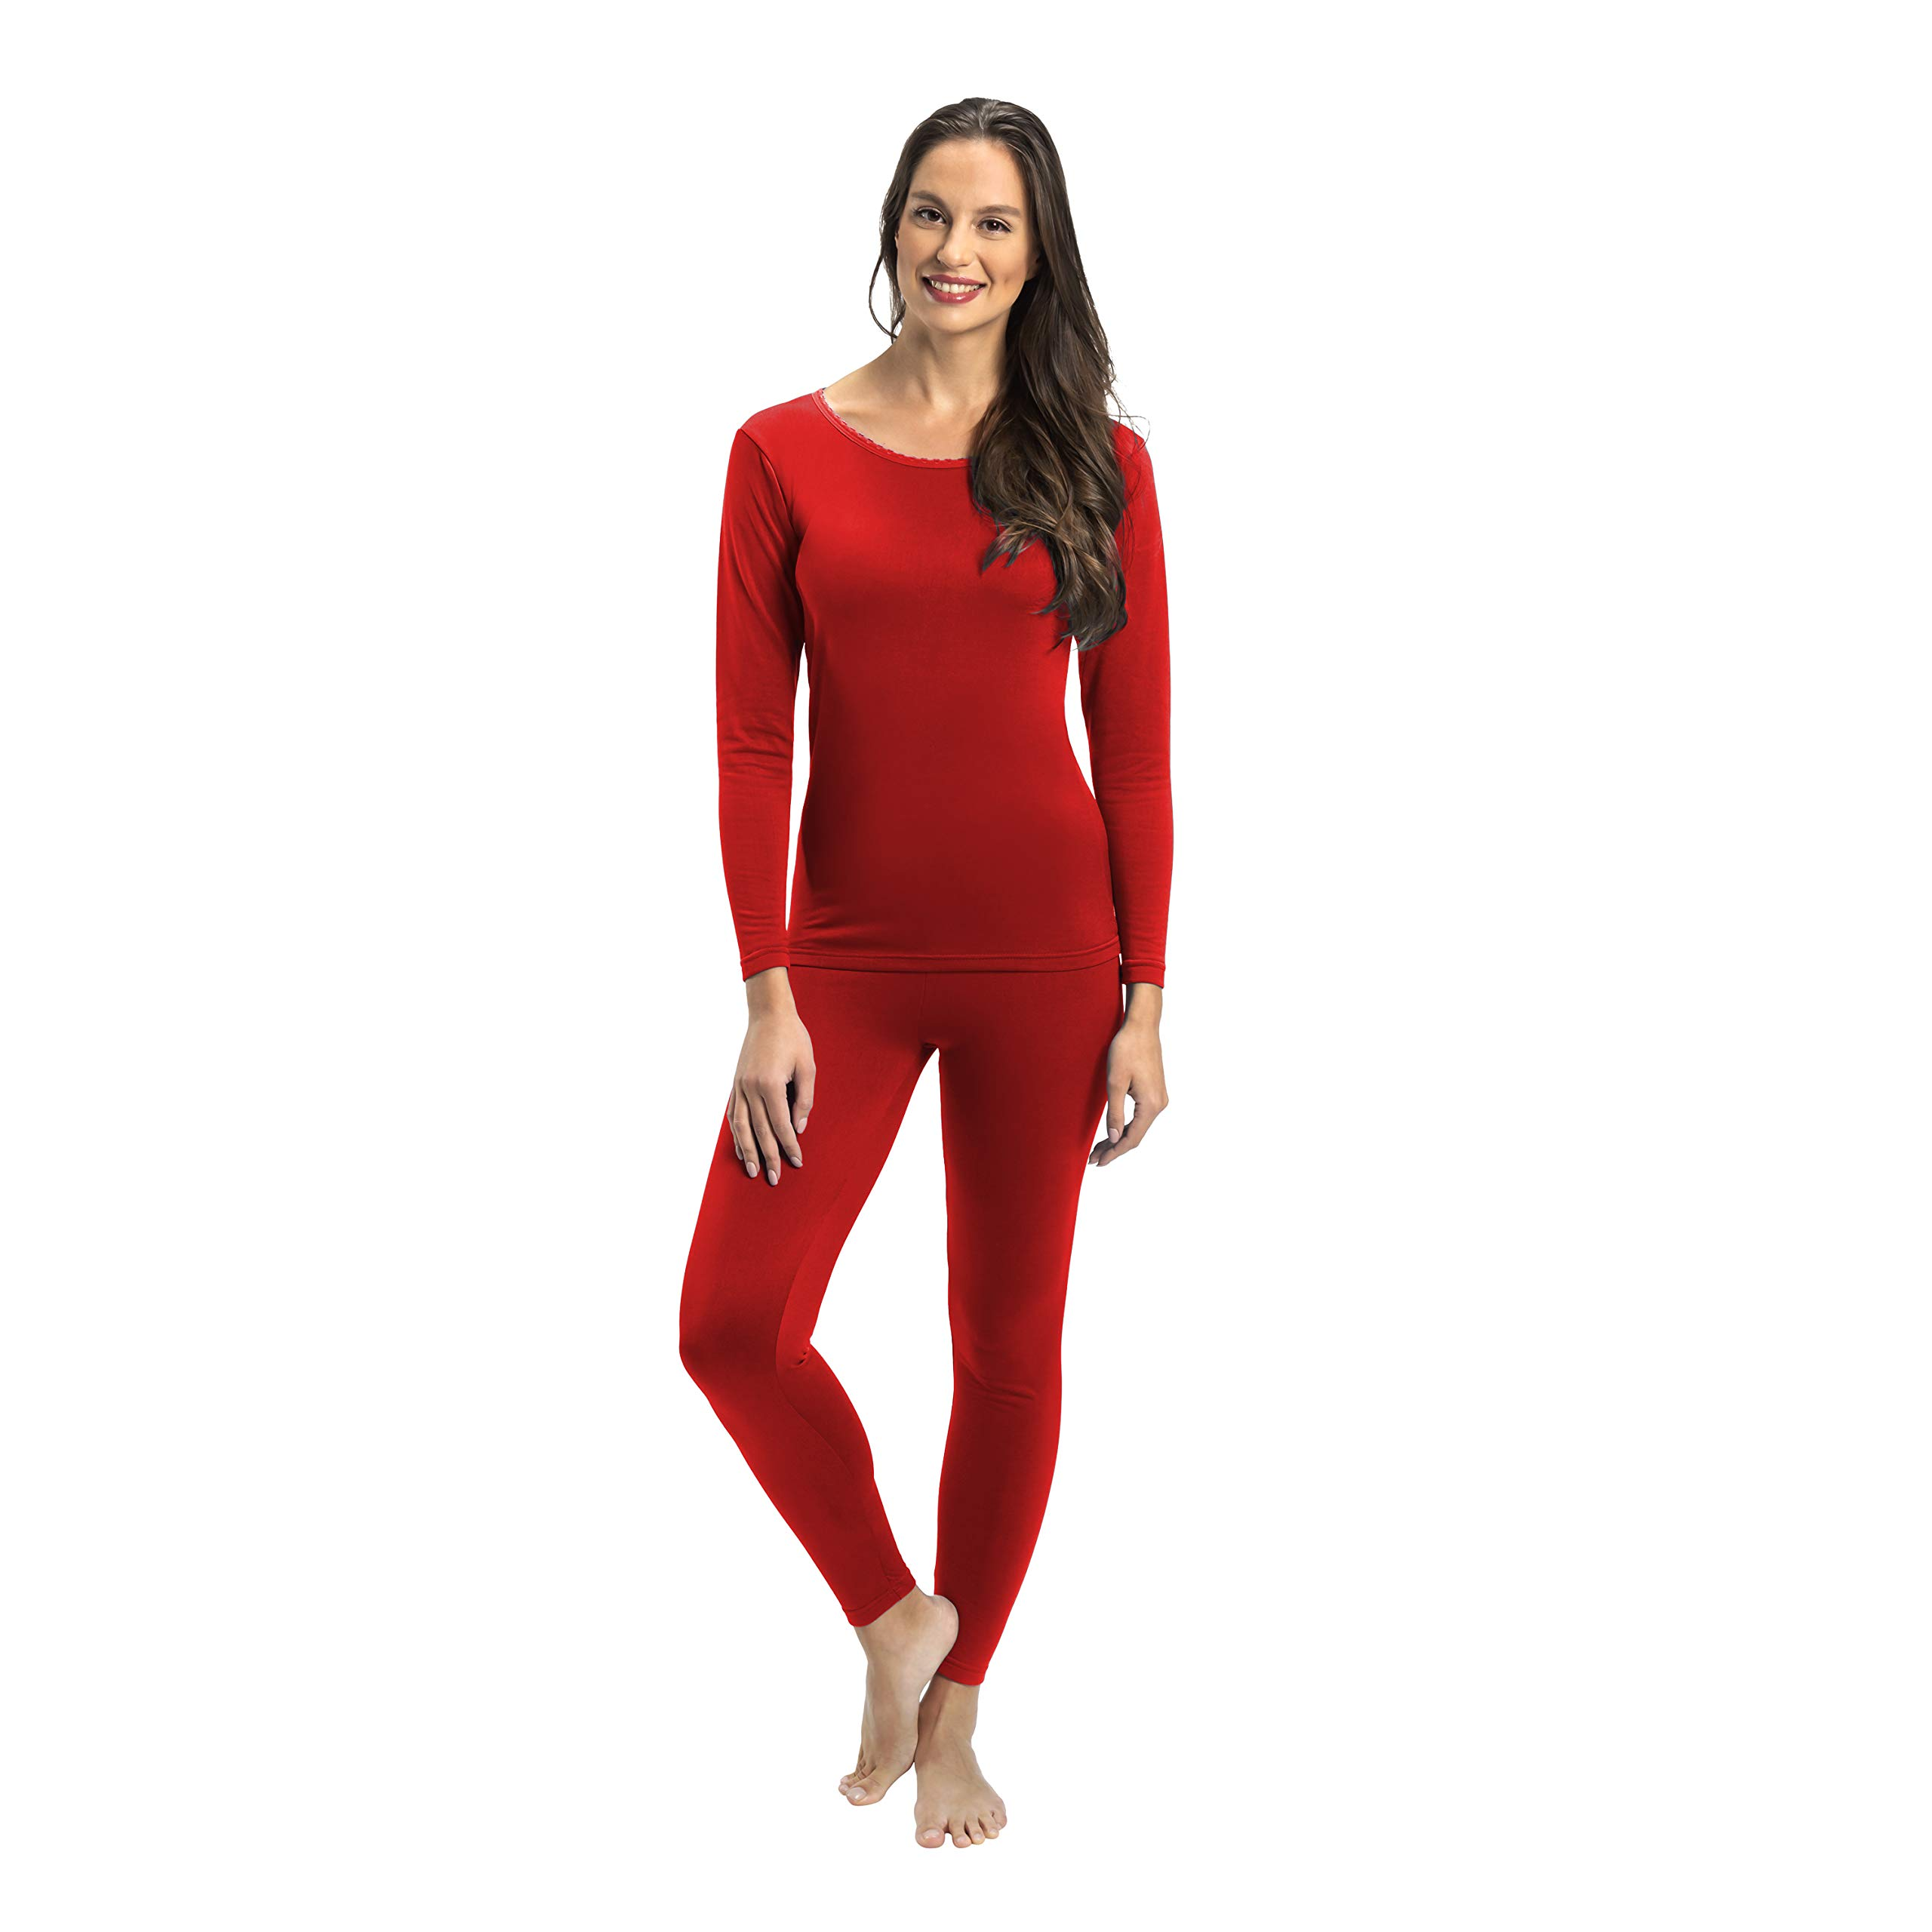 Rocky Womens Thermal 2 Pc Long John Underwear Set Top and Bottom Smooth Knit (Large, Red) by Rocky